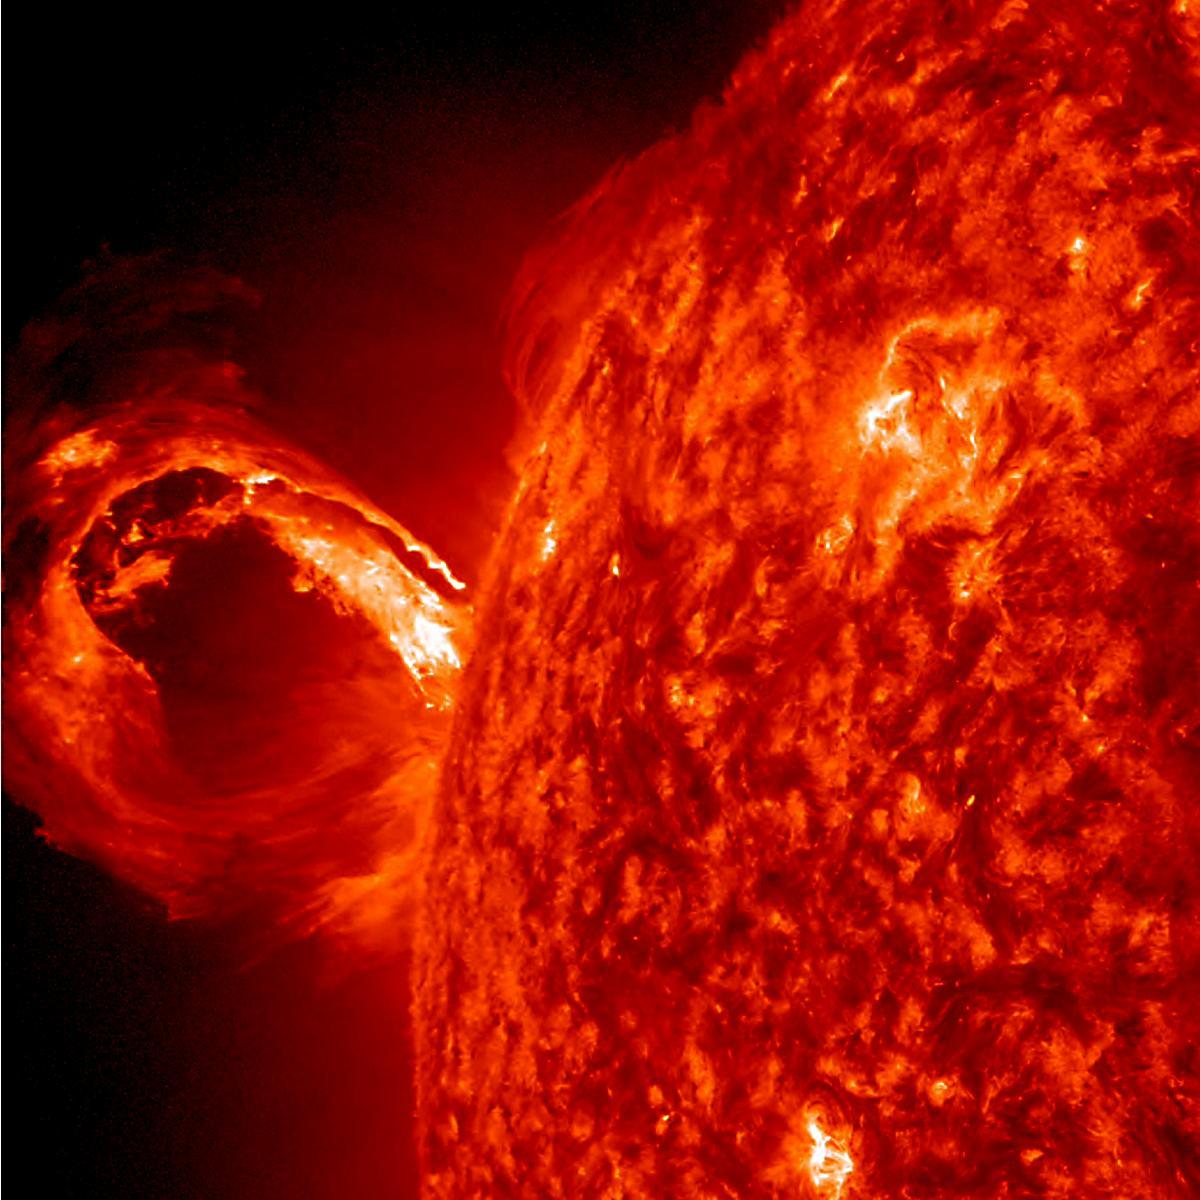 Gigantic Rolling Wave Captured on the Sun  A coronal mass ejection (CME) erupted from just around the edge of the sun on May 1, 2013, in a gigantic rolling wave. CMEs can shoot over a billion tons of particles into space at over a million miles per hour. This CME occurred on the sun's limb and is not headed toward Earth. The video (seen here), taken in extreme ultraviolet light by NASA's Solar Dynamics Observatory (SDO), covers about two and a half hours. Credit: NASA/Goddard/SDO